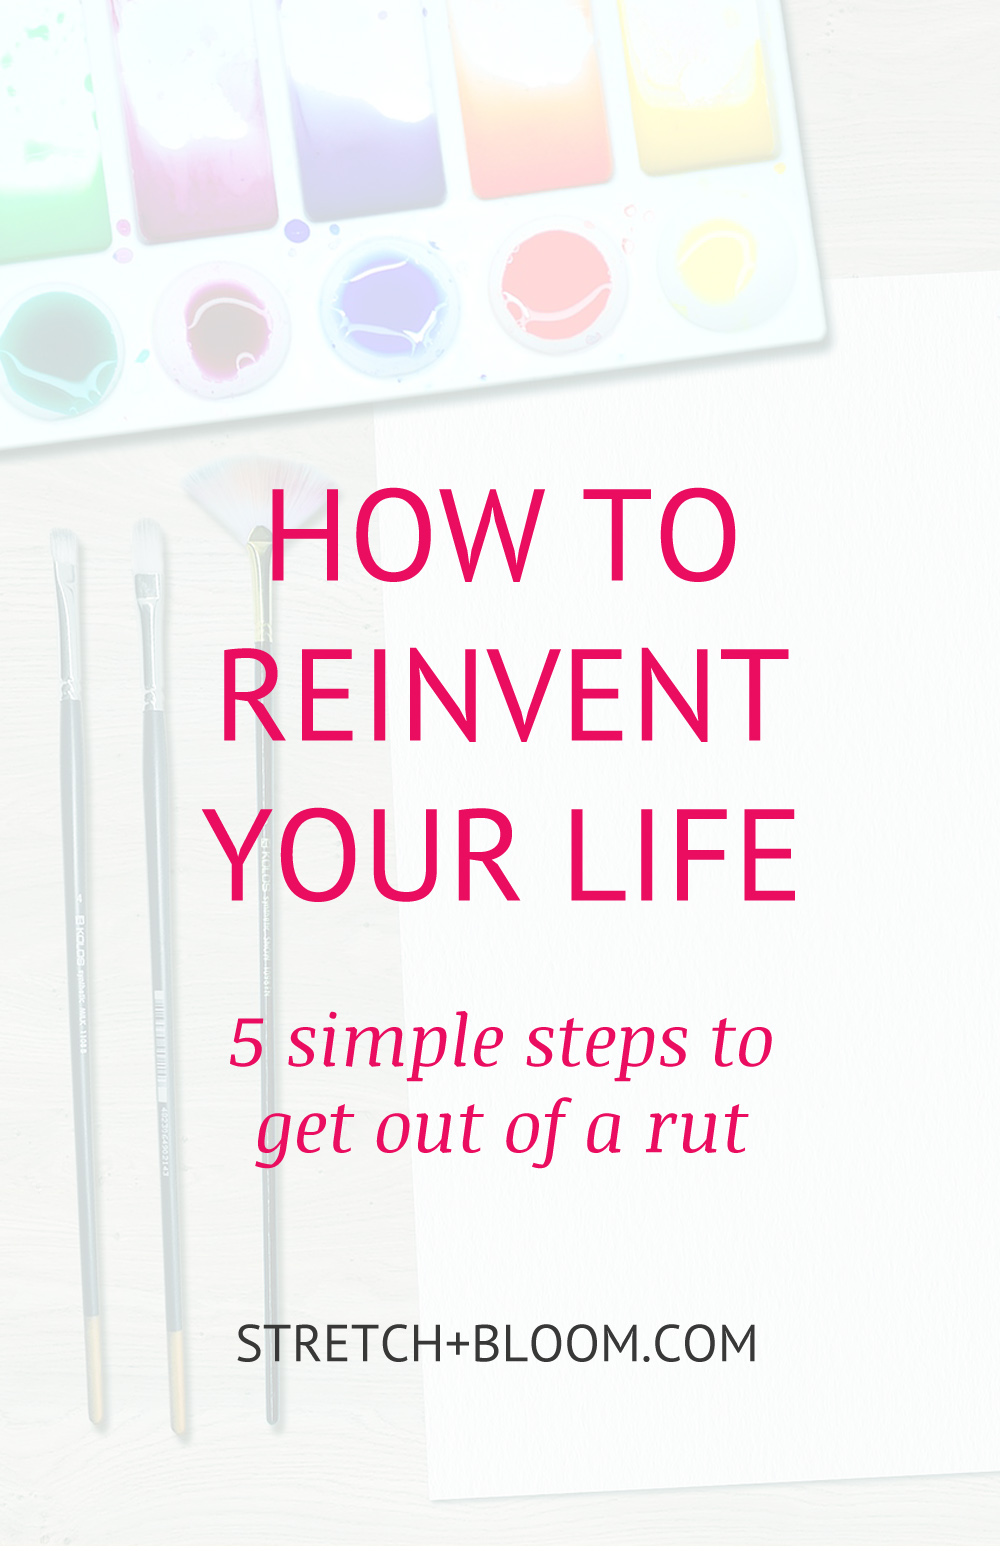 Sometimes in life you get stuck in a rut and live on auto-pilot. This is how you can reinvent your life in a few short steps.